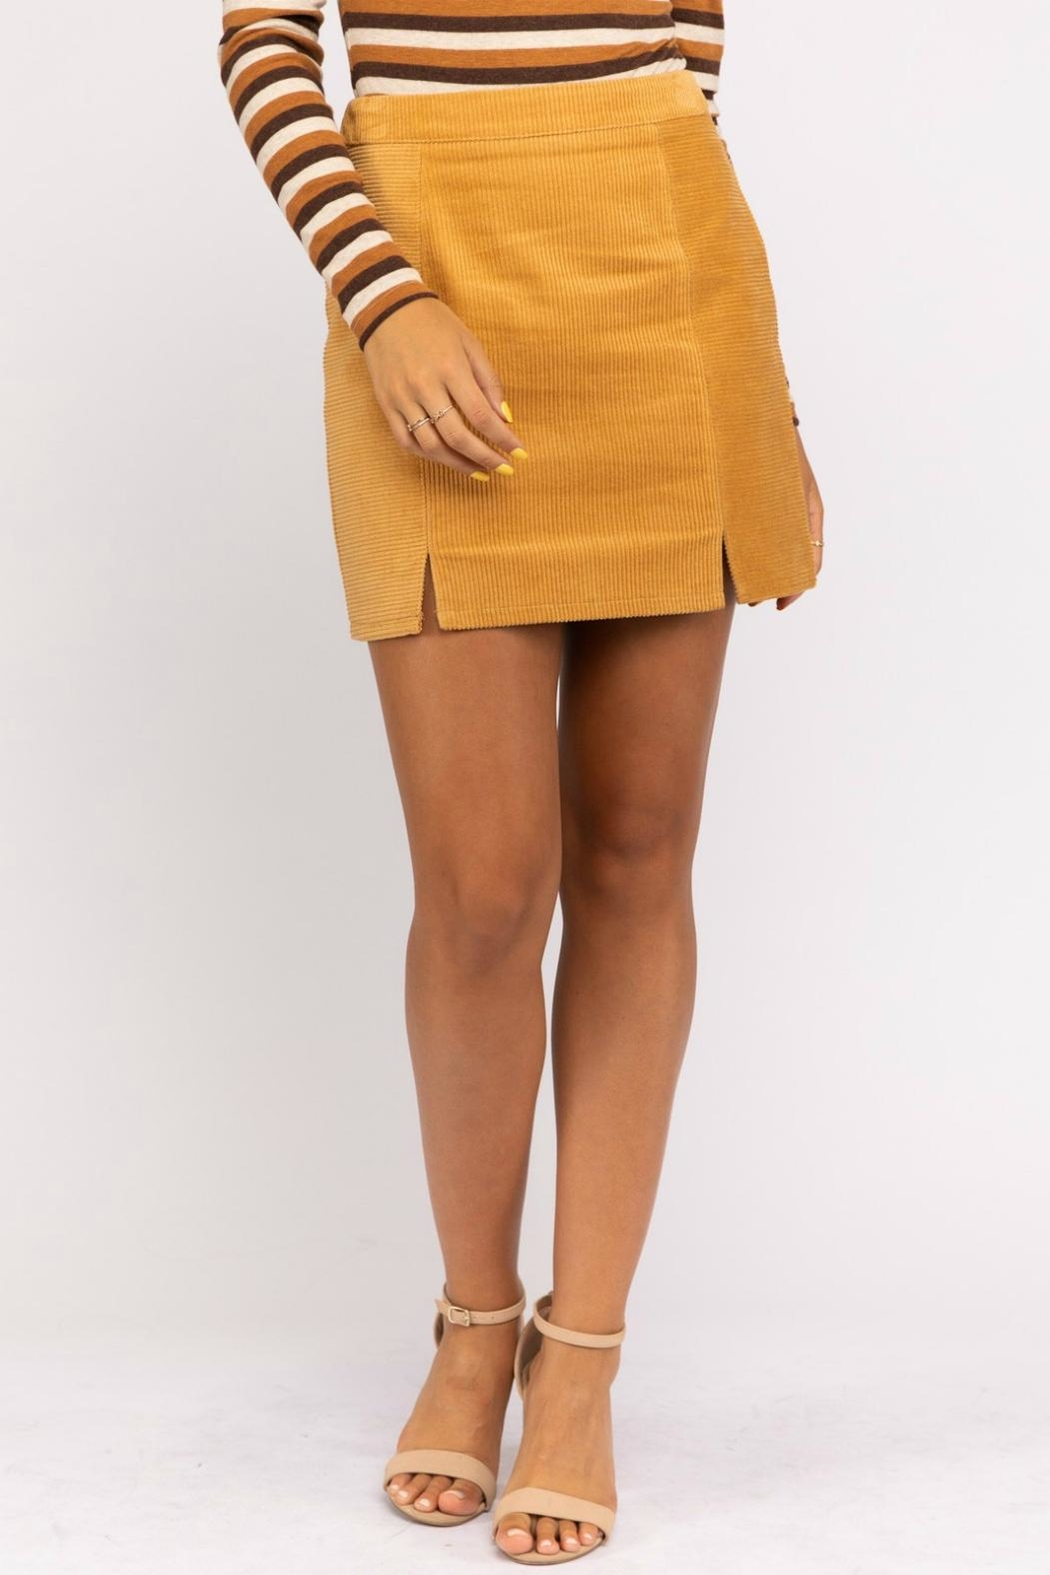 Pretty Little Things Mustard Corduroy Skirt - Main Image